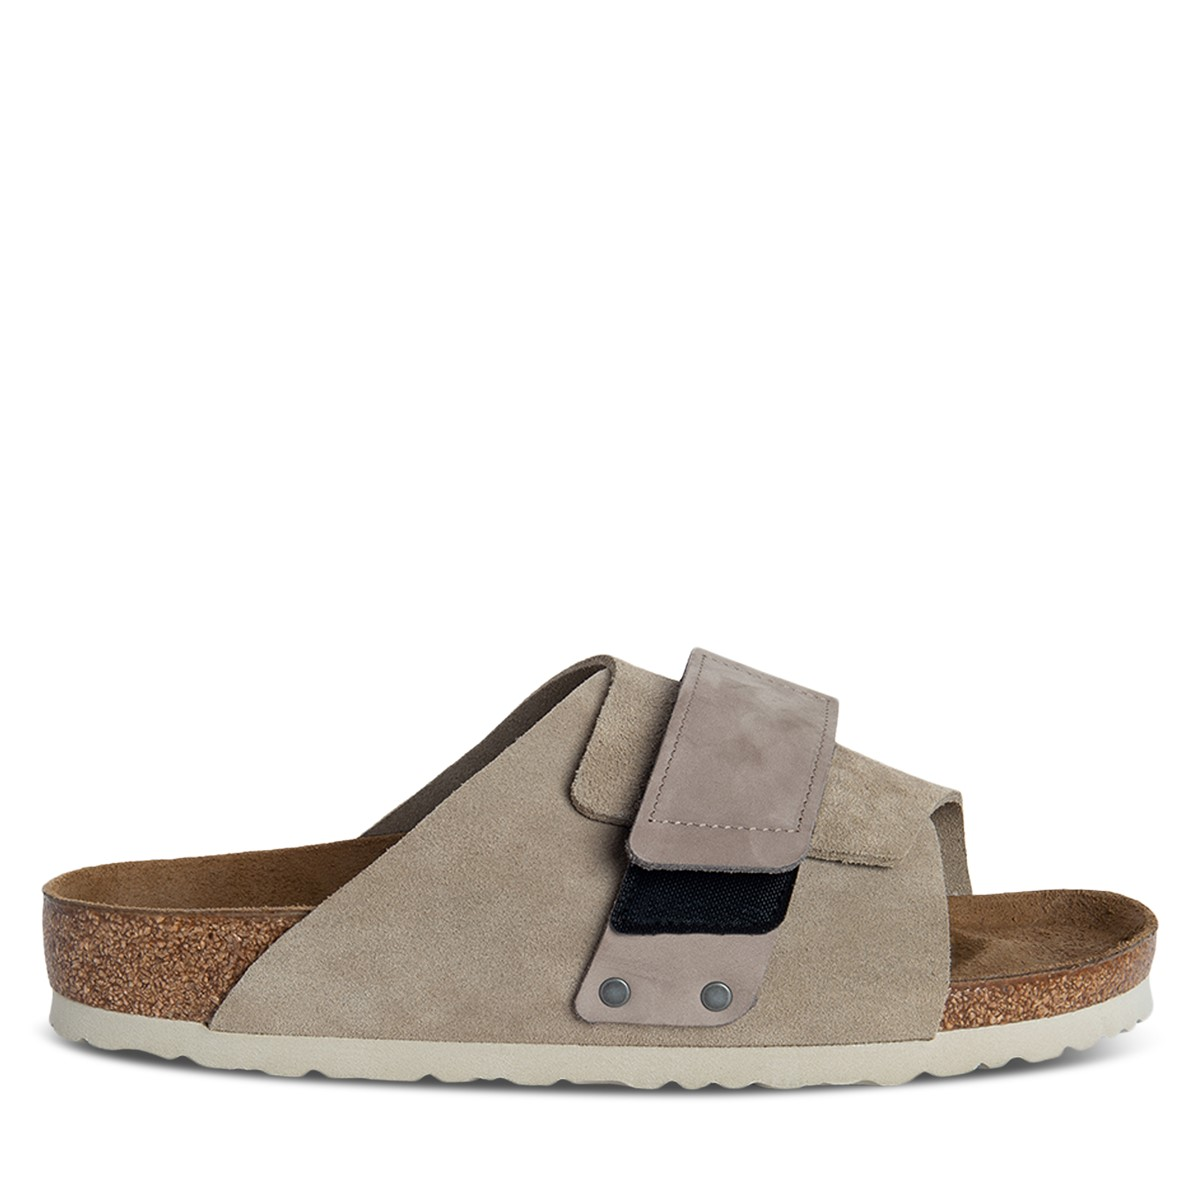 Women's Kyoto Suede Sandals in Beige